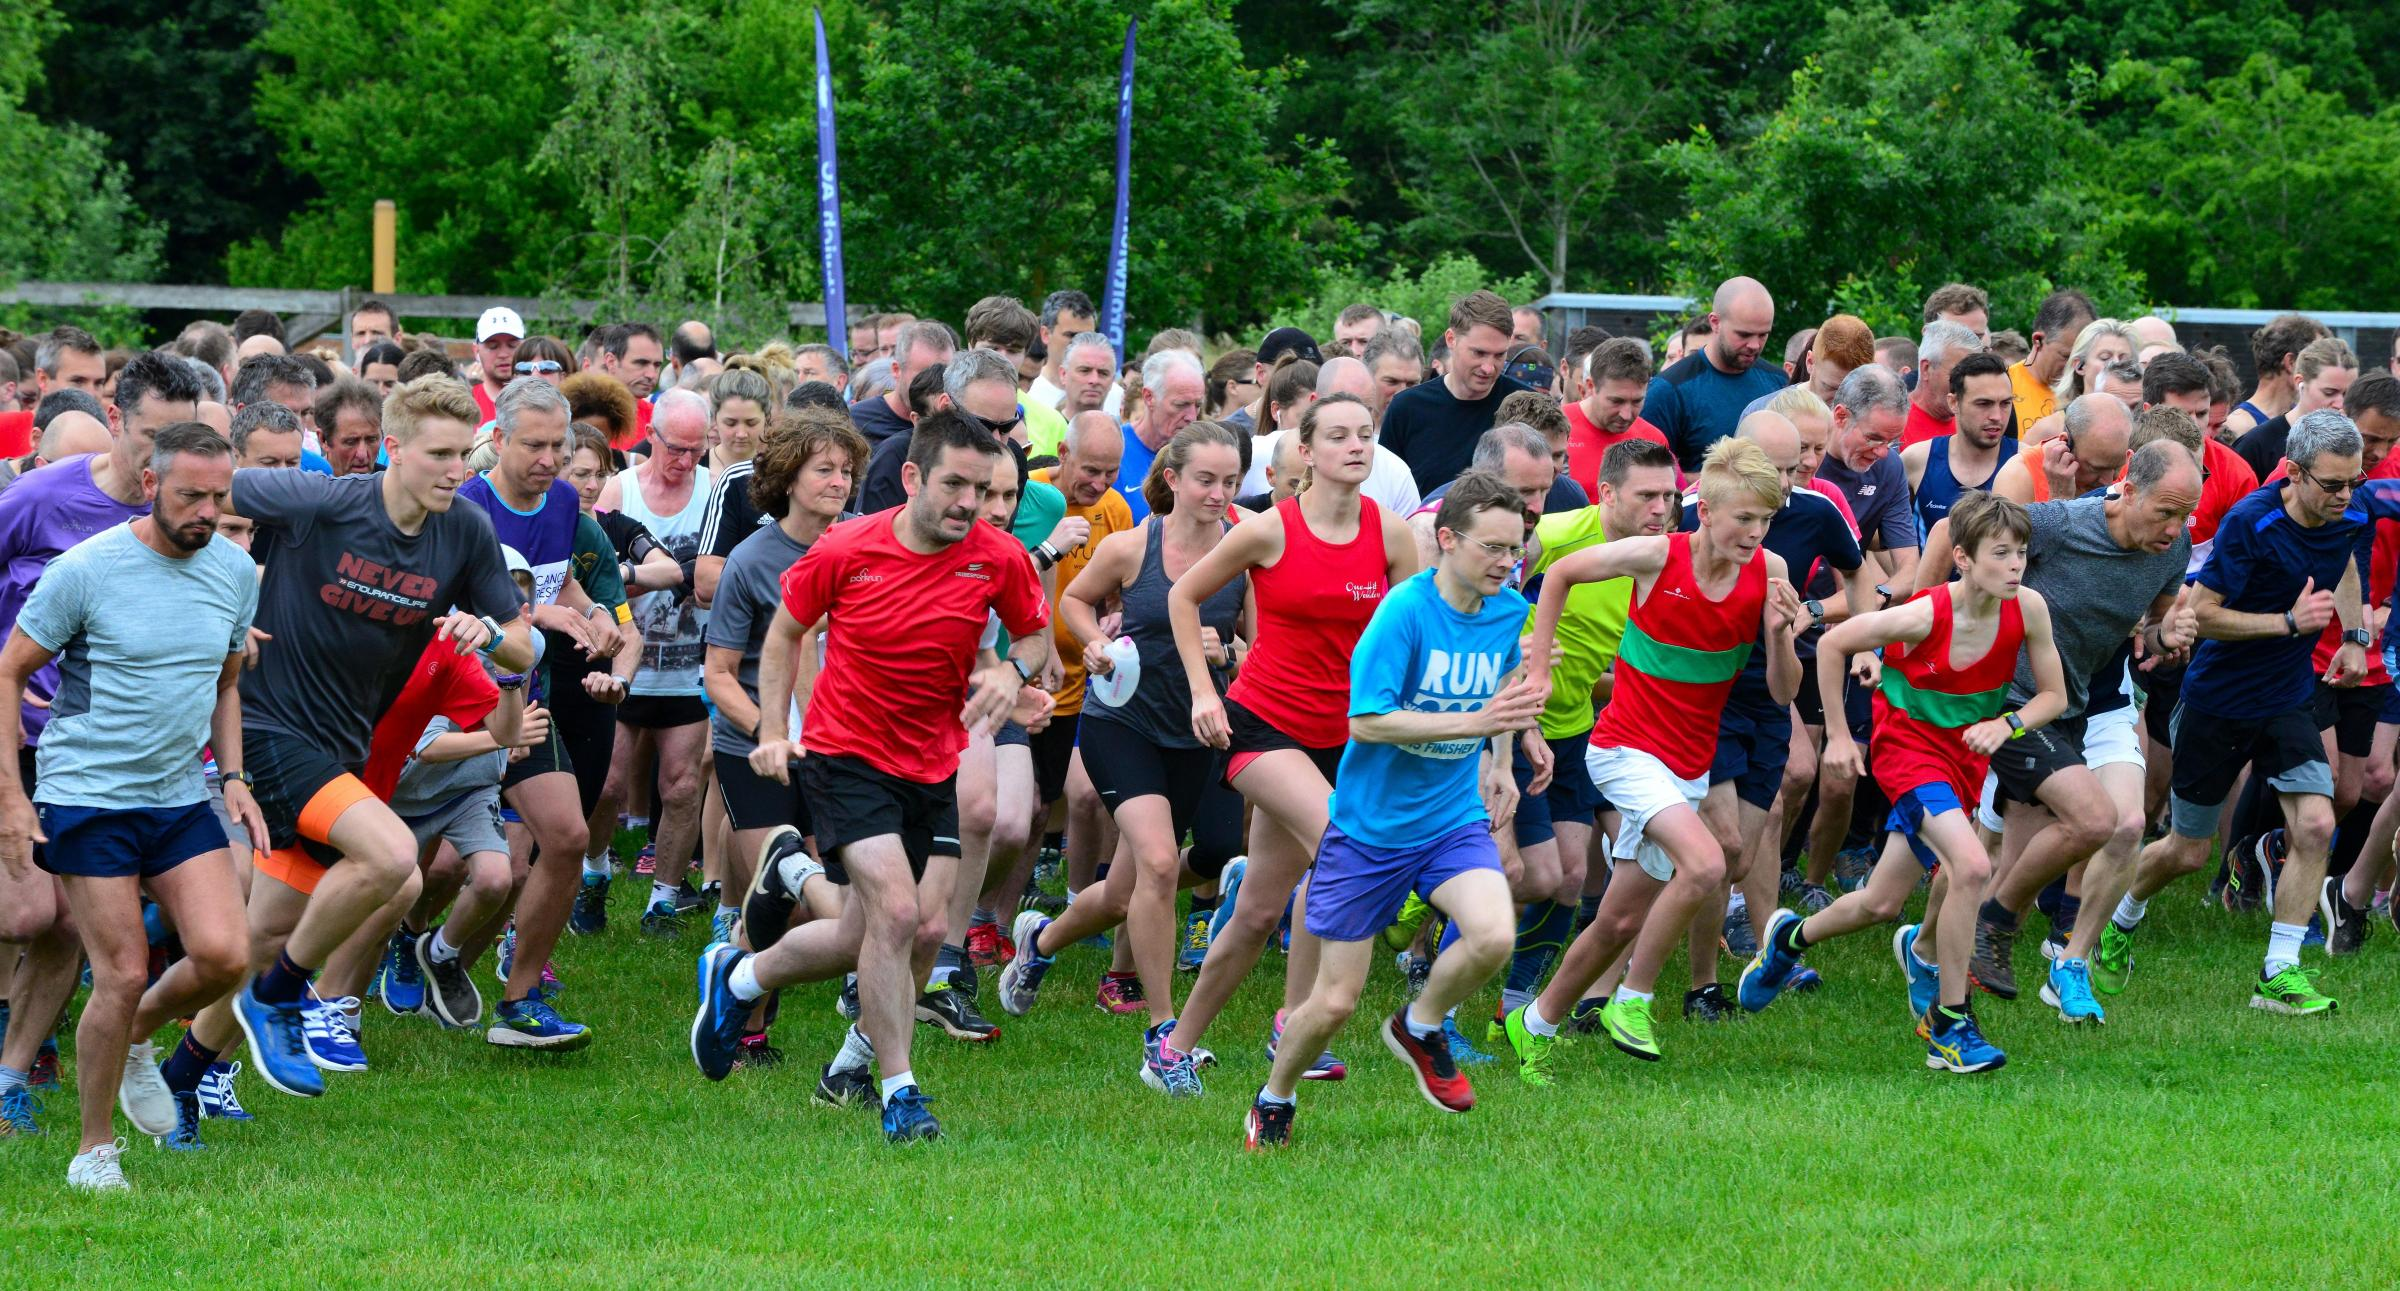 WNJAWoodsrun....5K Fun Run at Worcester Woods Country Park on Saturday morning.